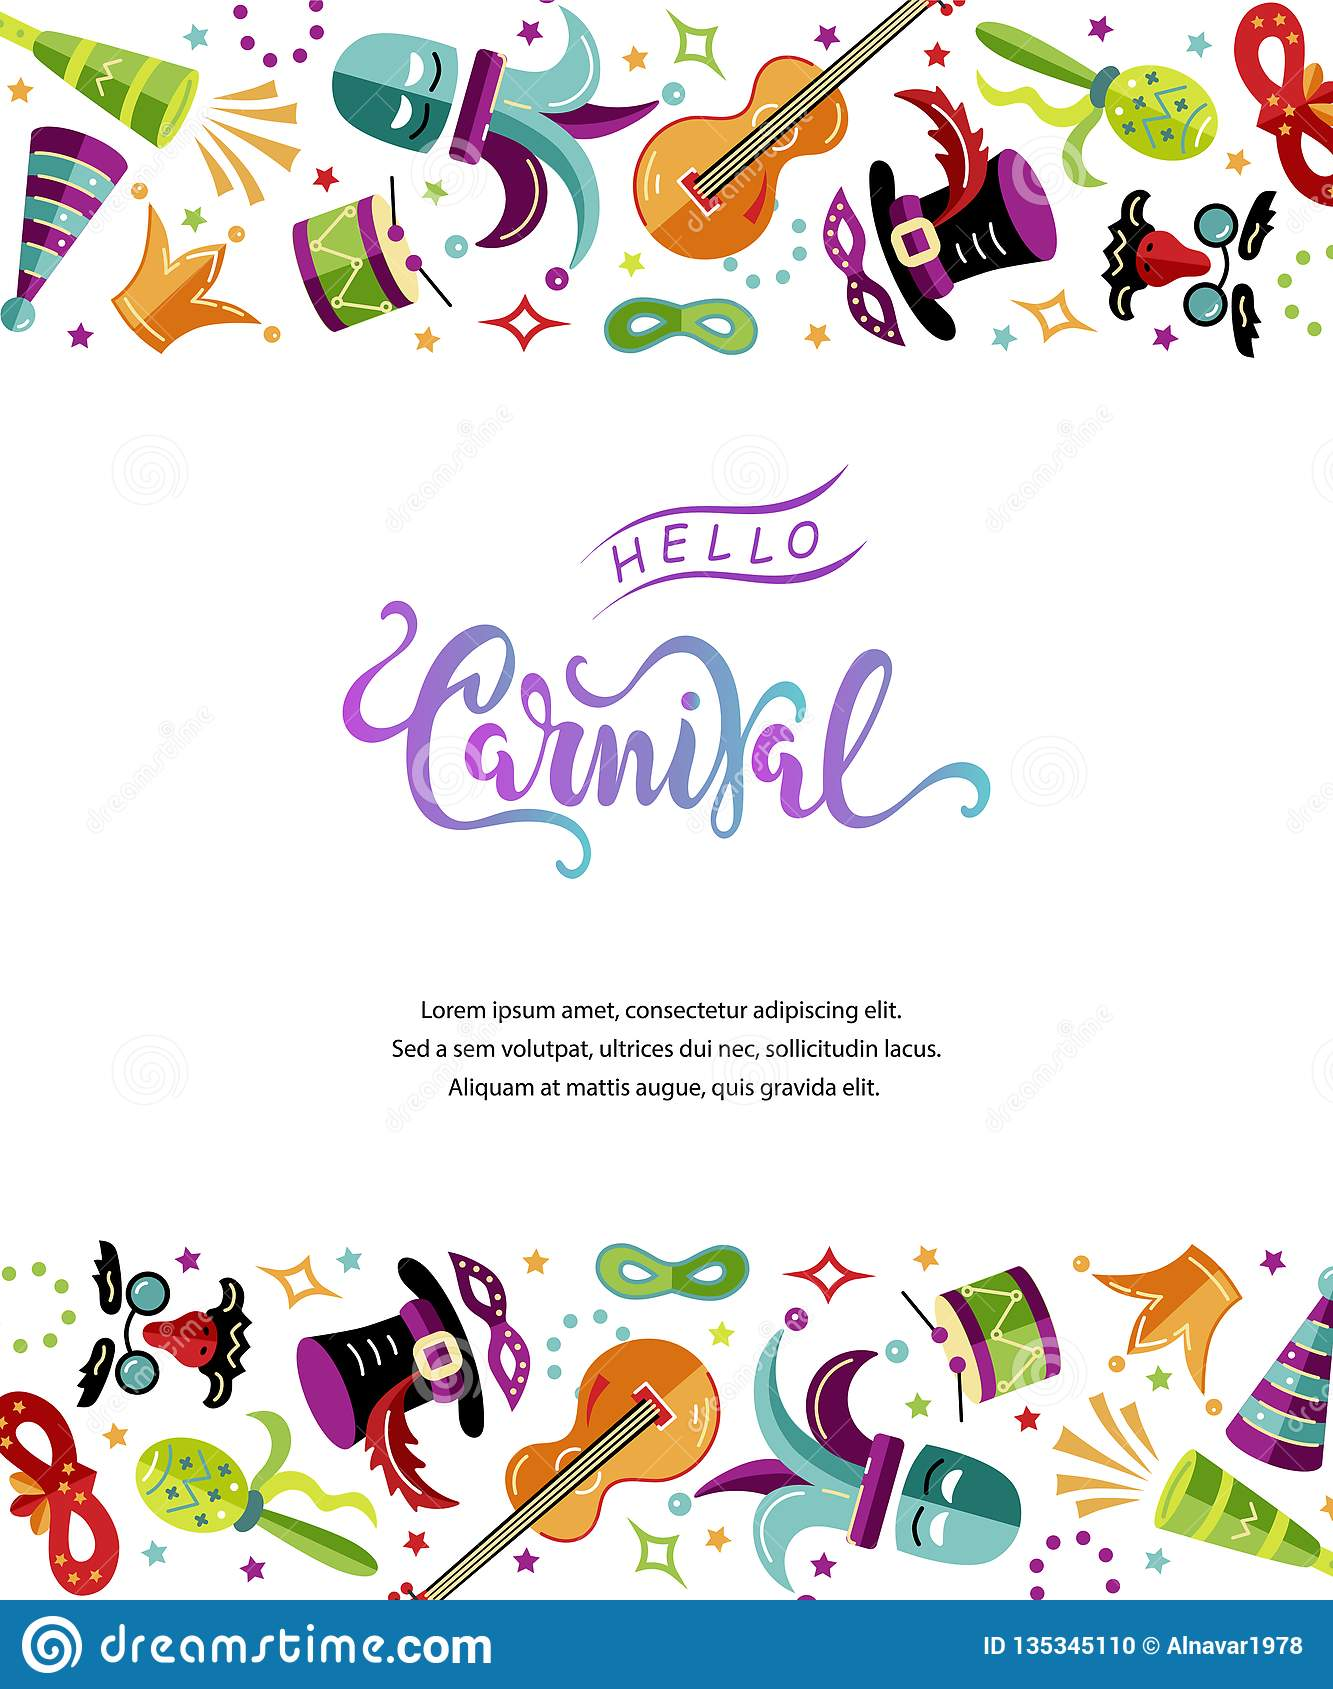 Vector illustration with carnival and celebratory objects